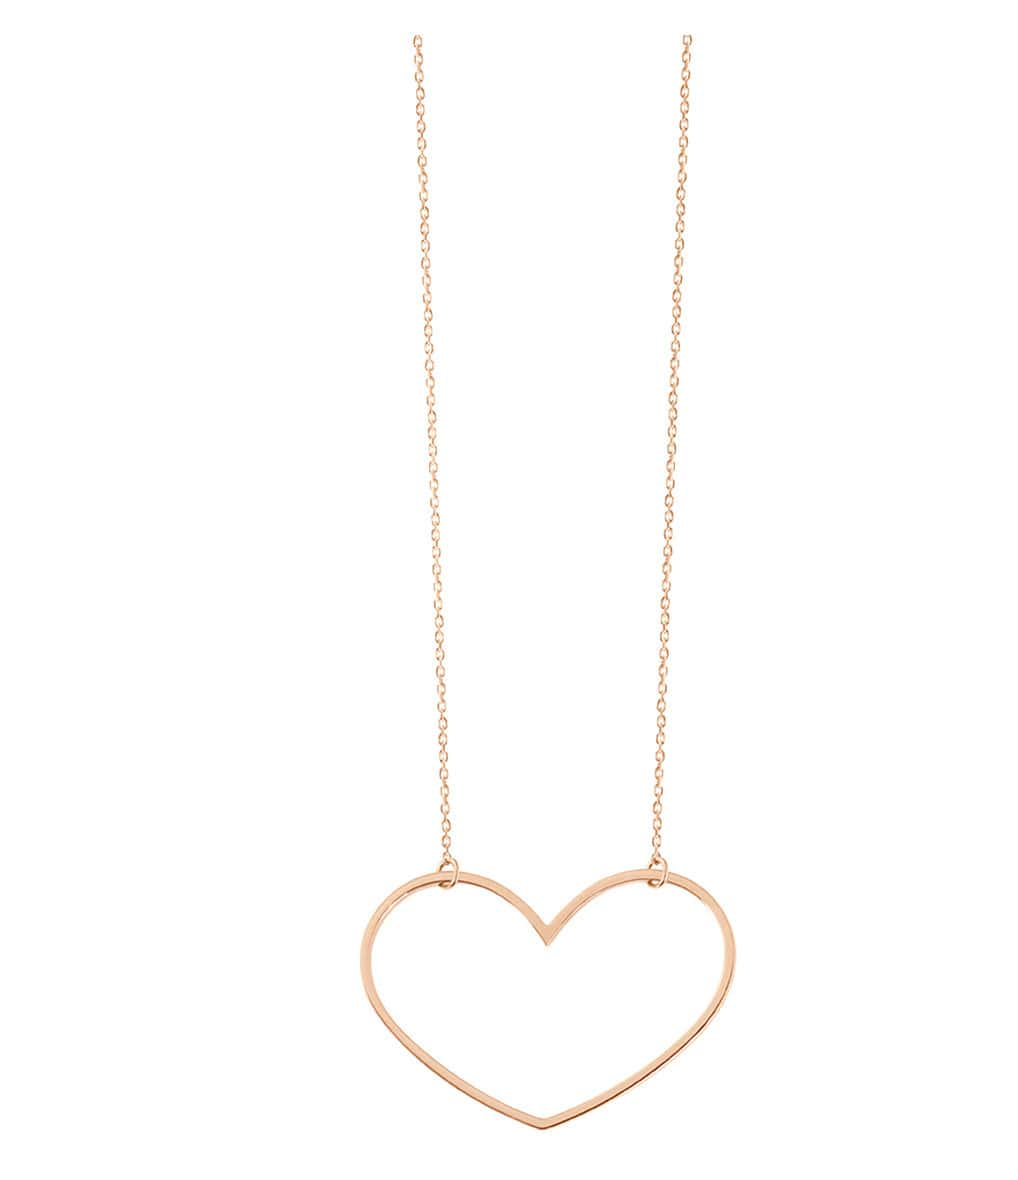 VANRYCKE - Collier Angie Or Rose M